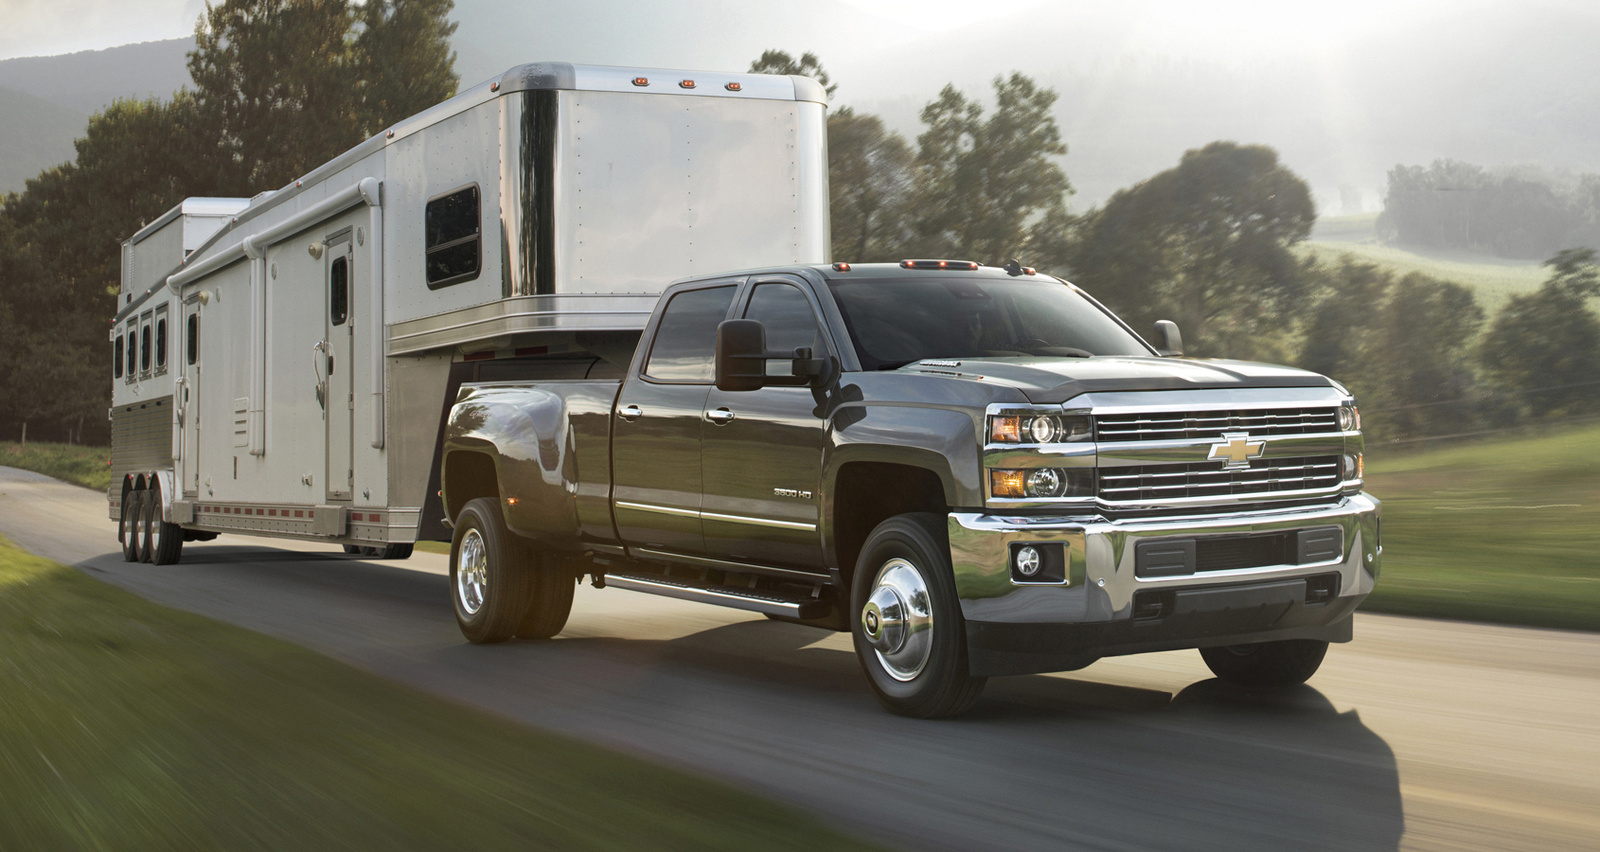 2016 chevrolet silverado 3500hd overview cargurus. Black Bedroom Furniture Sets. Home Design Ideas